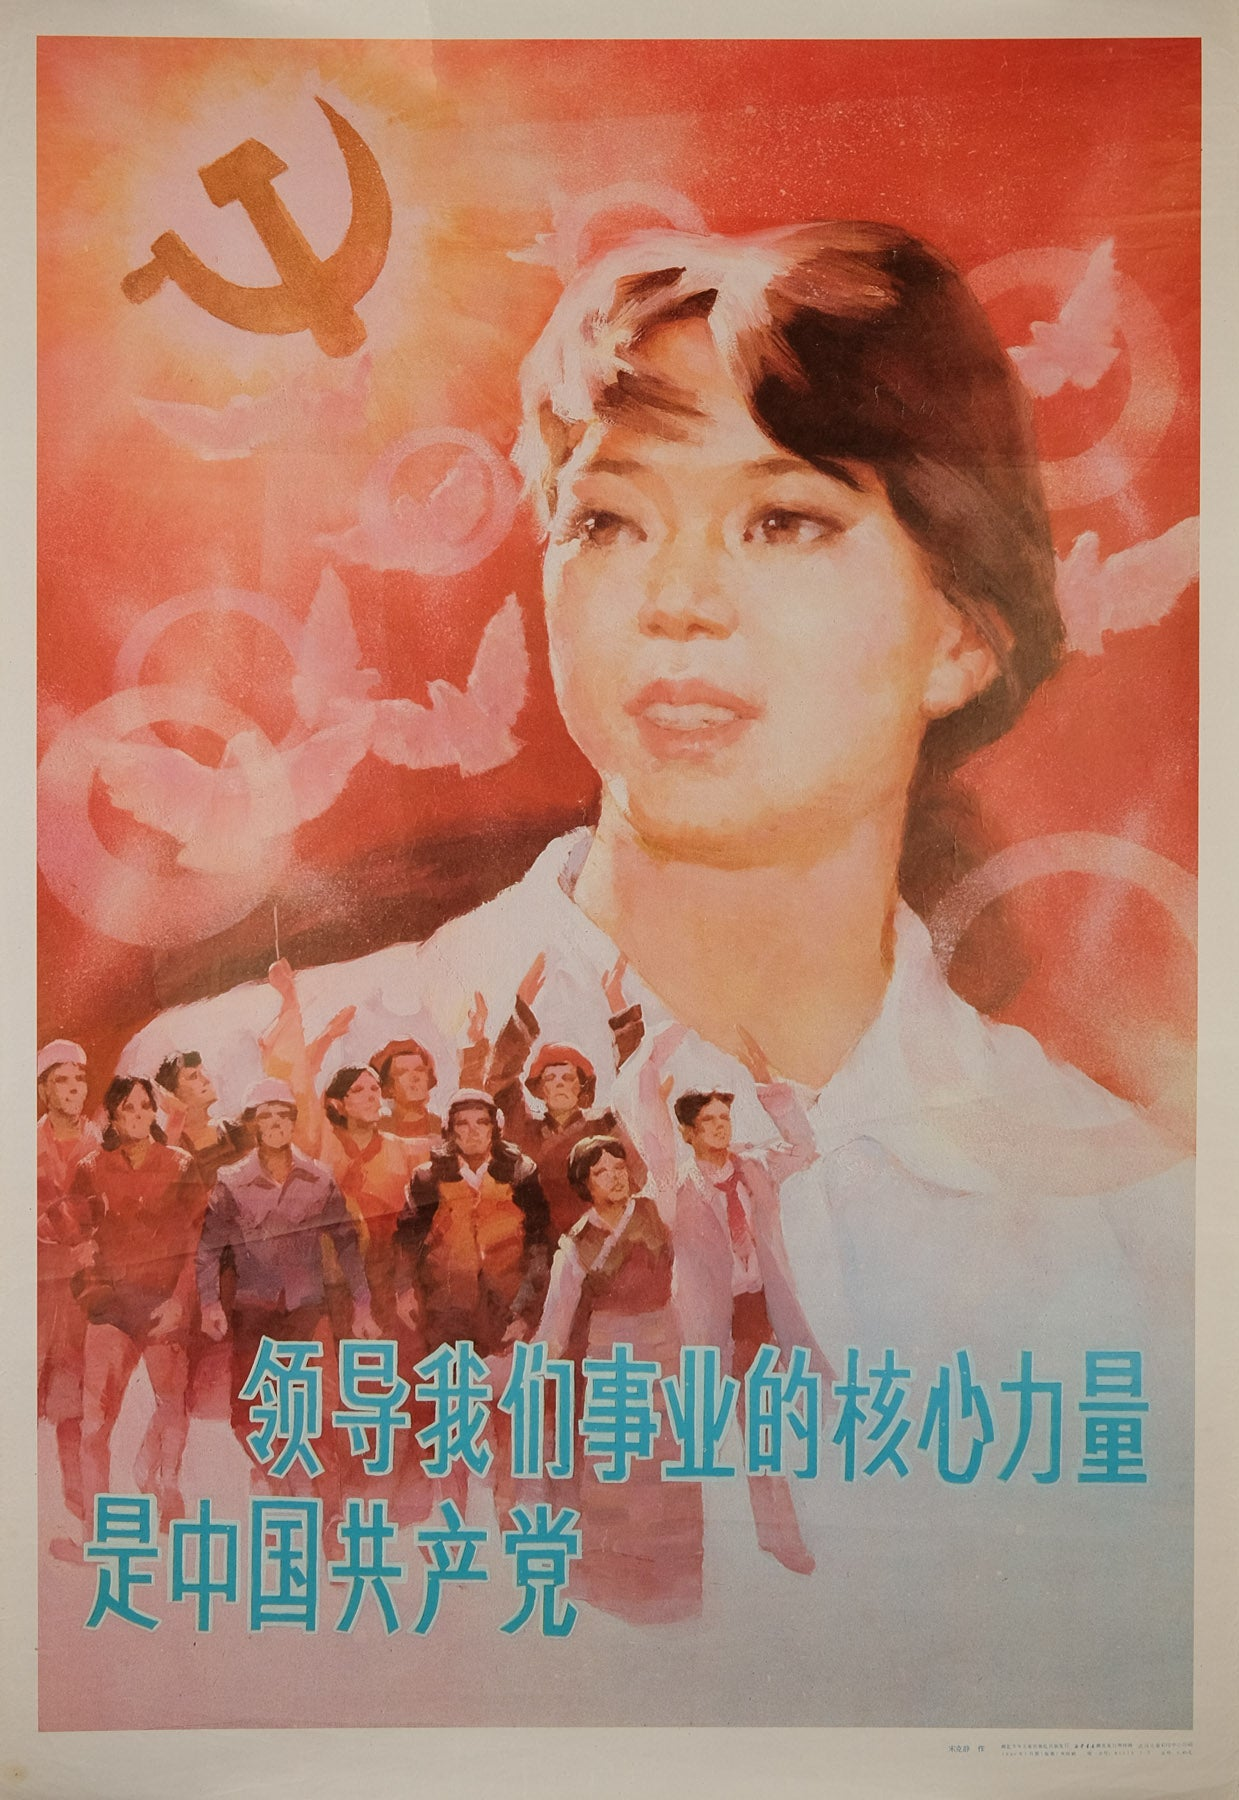 original vintage 1990 Chinese communist propaganda poster The core strength leading our cause is the Chinese Communist Party by Song Kejing